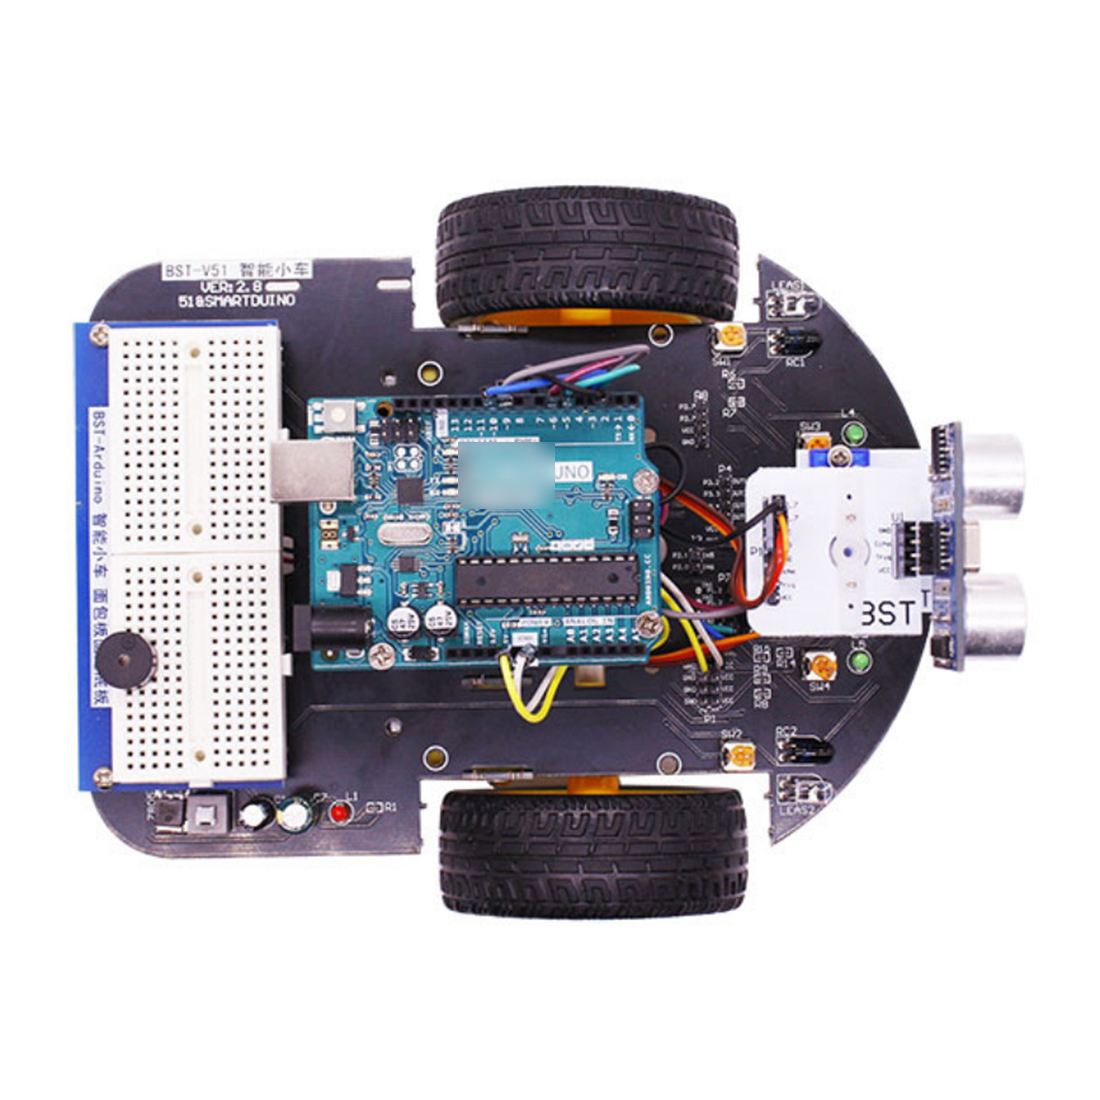 Hot 2-In-1 Project Super Starter Kit Smart Robot Car With Tutorial Programme Stem Toys For Arduino (Including UNO R3 Mainboard)